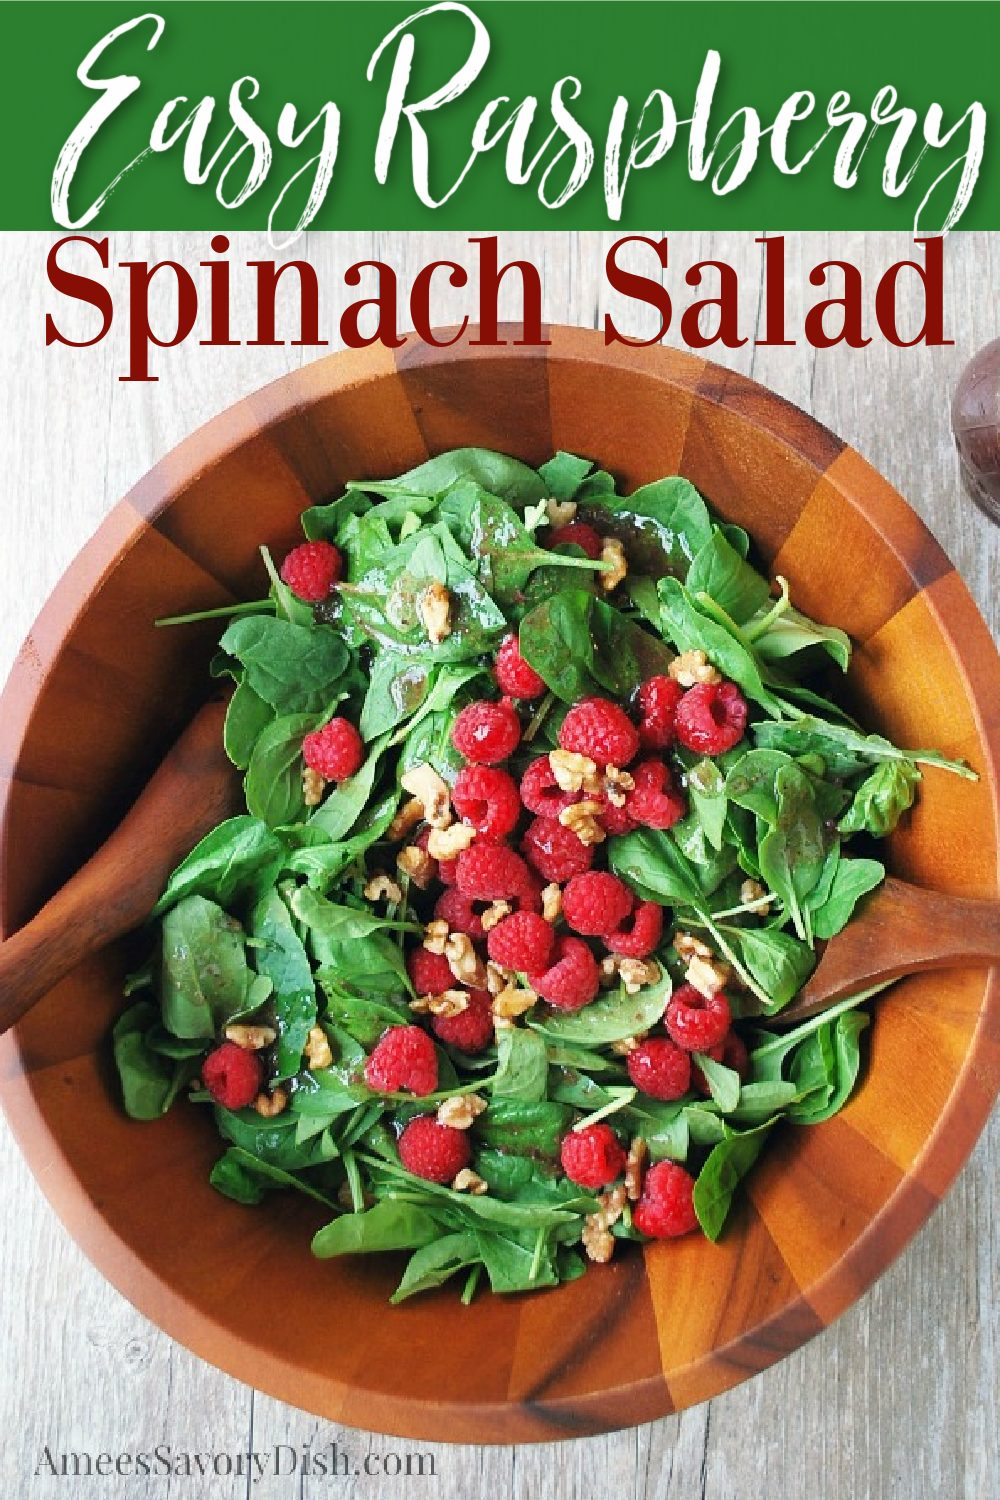 An easy raspberry spinach salad (aka Christmas salad) recipe made with fresh baby spinach, fresh raspberries, candied walnuts, and raspberry vinaigrette dressing.#holidaysalad #christmassalad #spinachsalad #raspberryspinachsalad #easyspinachsalad via @Ameessavorydish